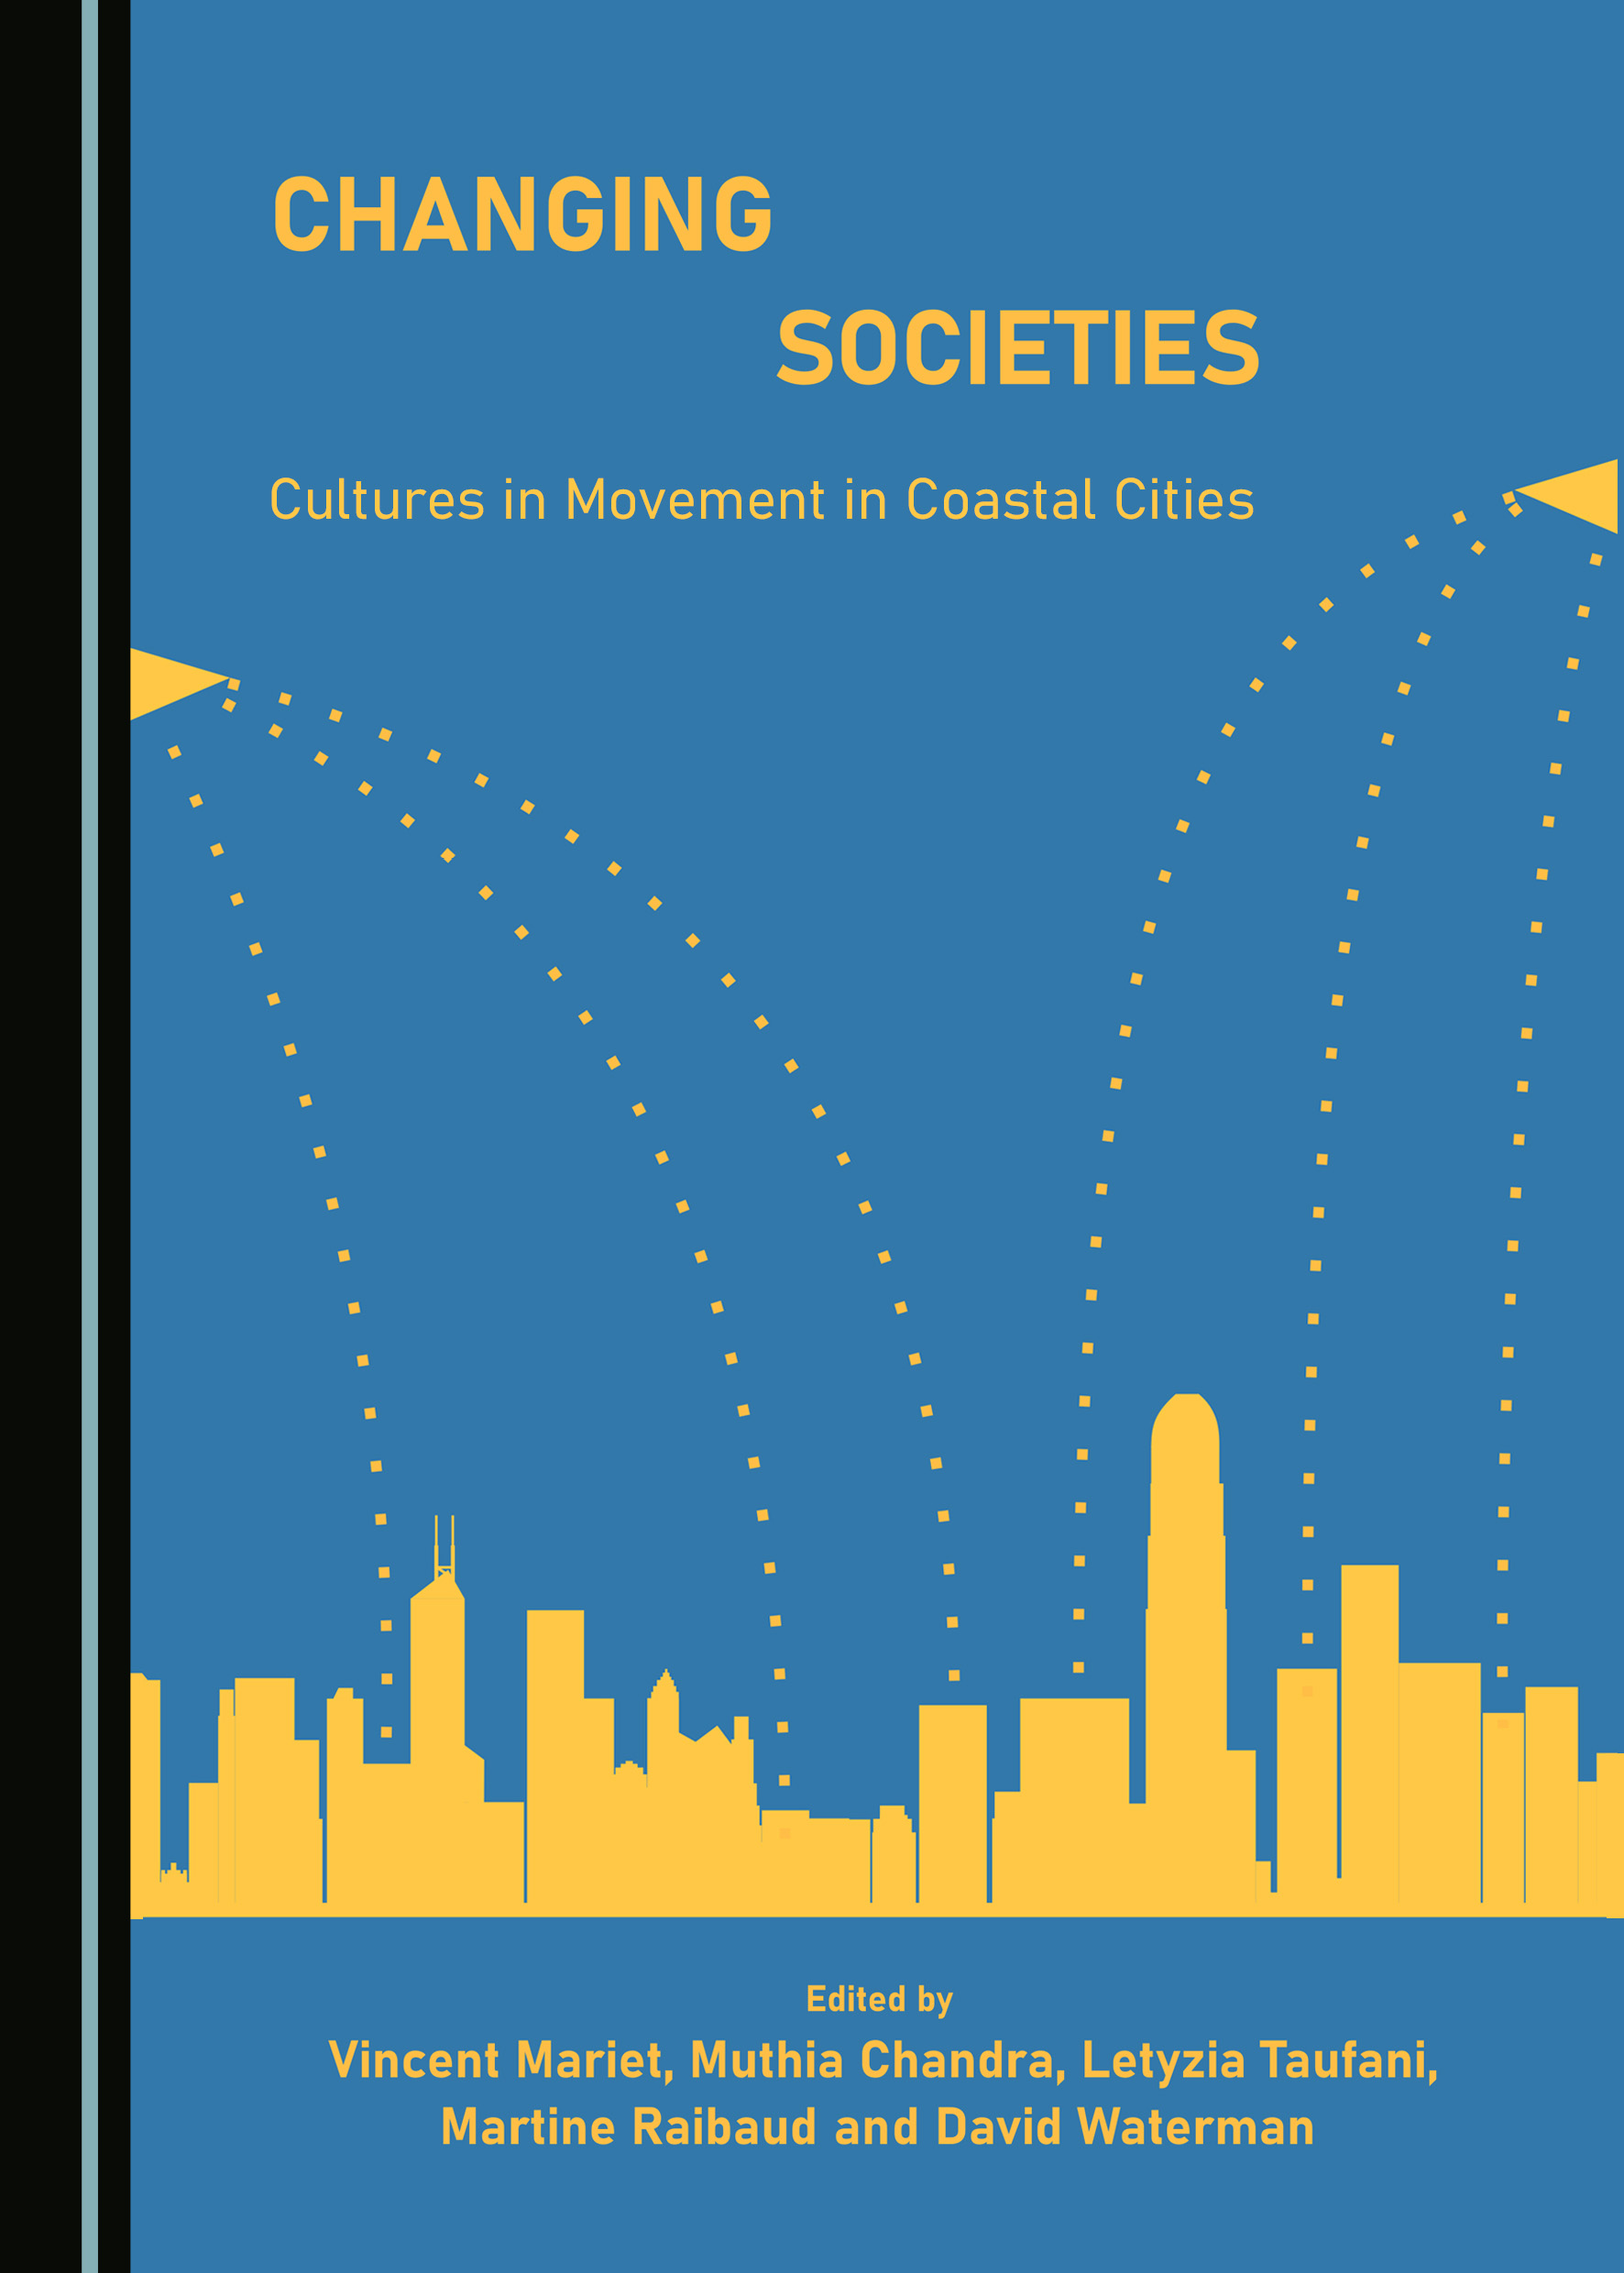 Changing Societies: Cultures in Movement in Coastal Cities